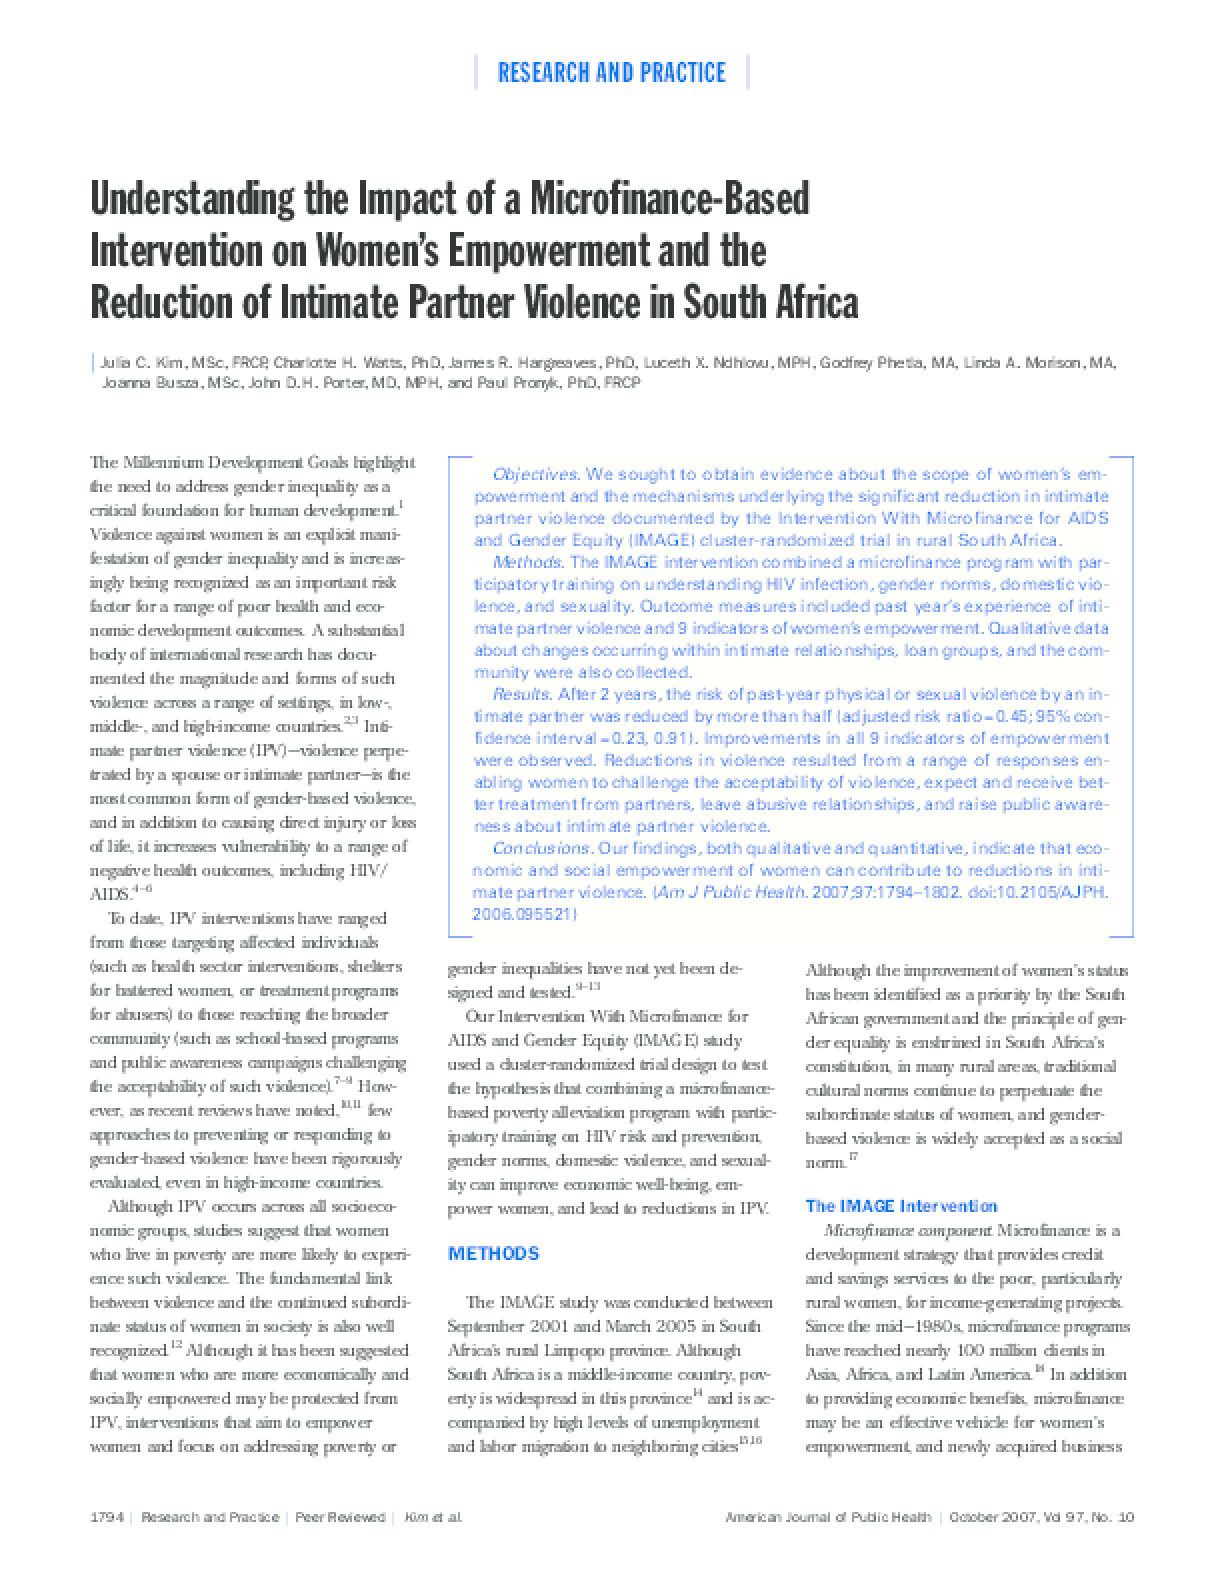 Understanding the impact of a microfinance-based intervention on women's empowerment and the reduction of intimate partner violence in South Africa